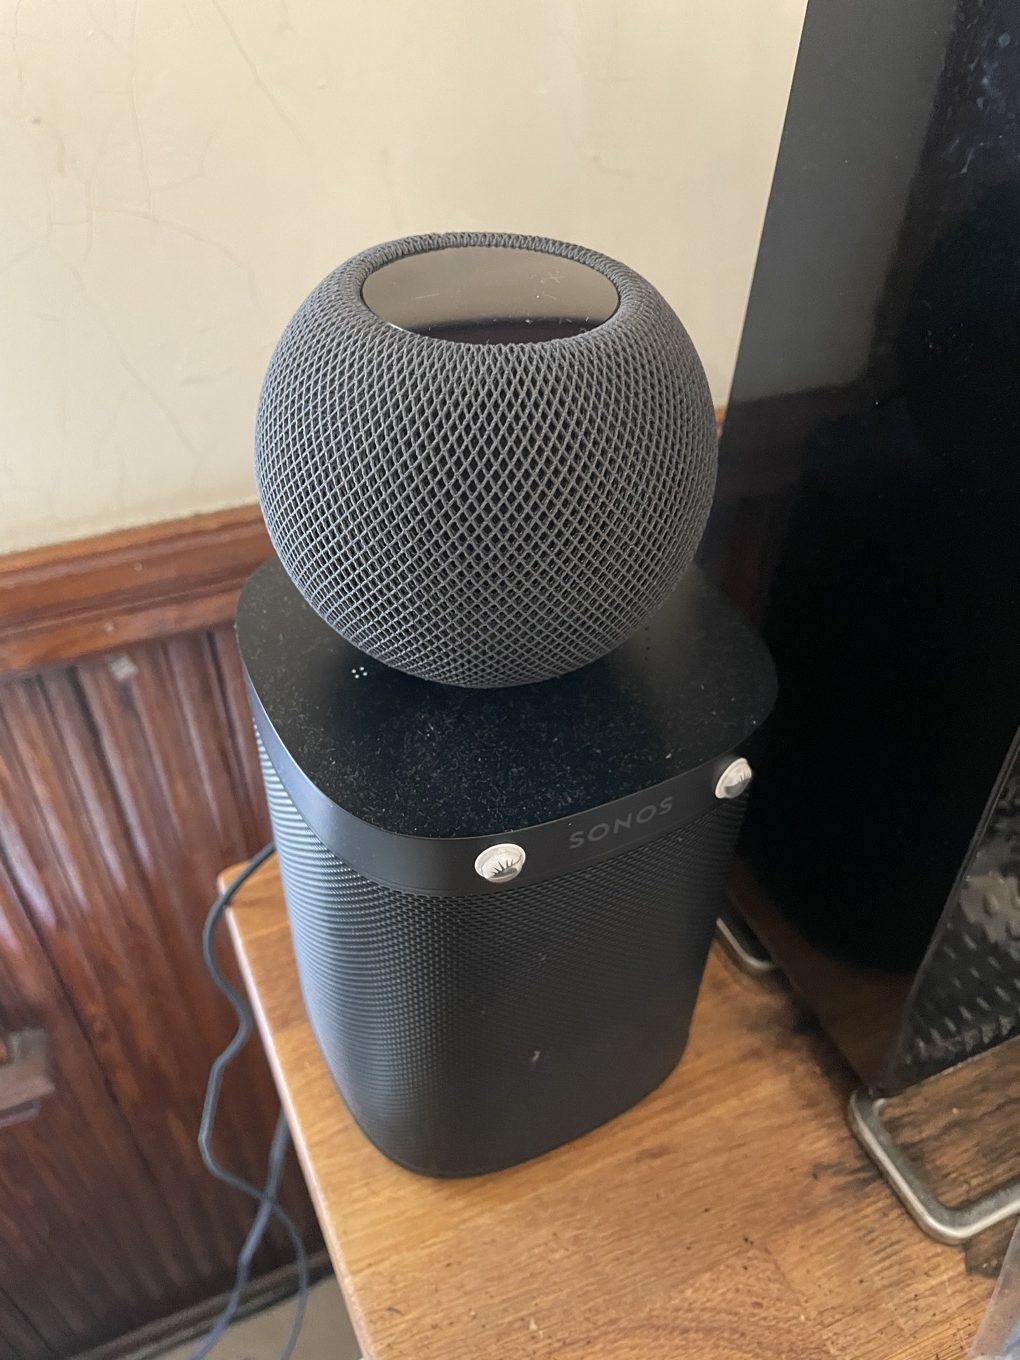 HomePod mini and Sonos One